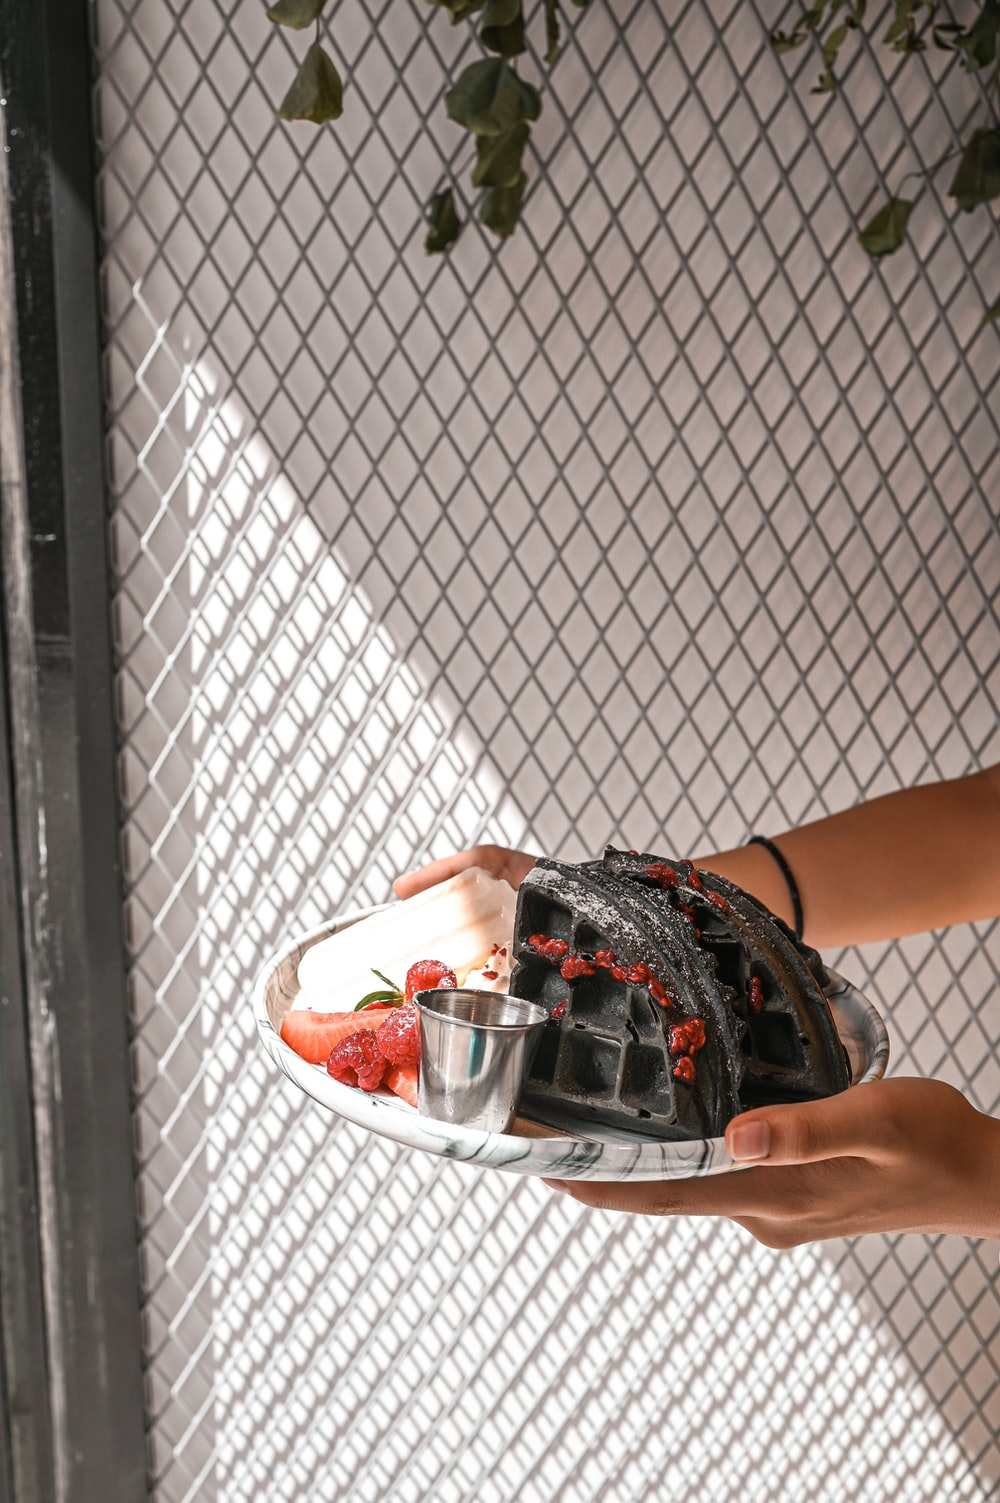 person holding clear glass bowl with red liquid